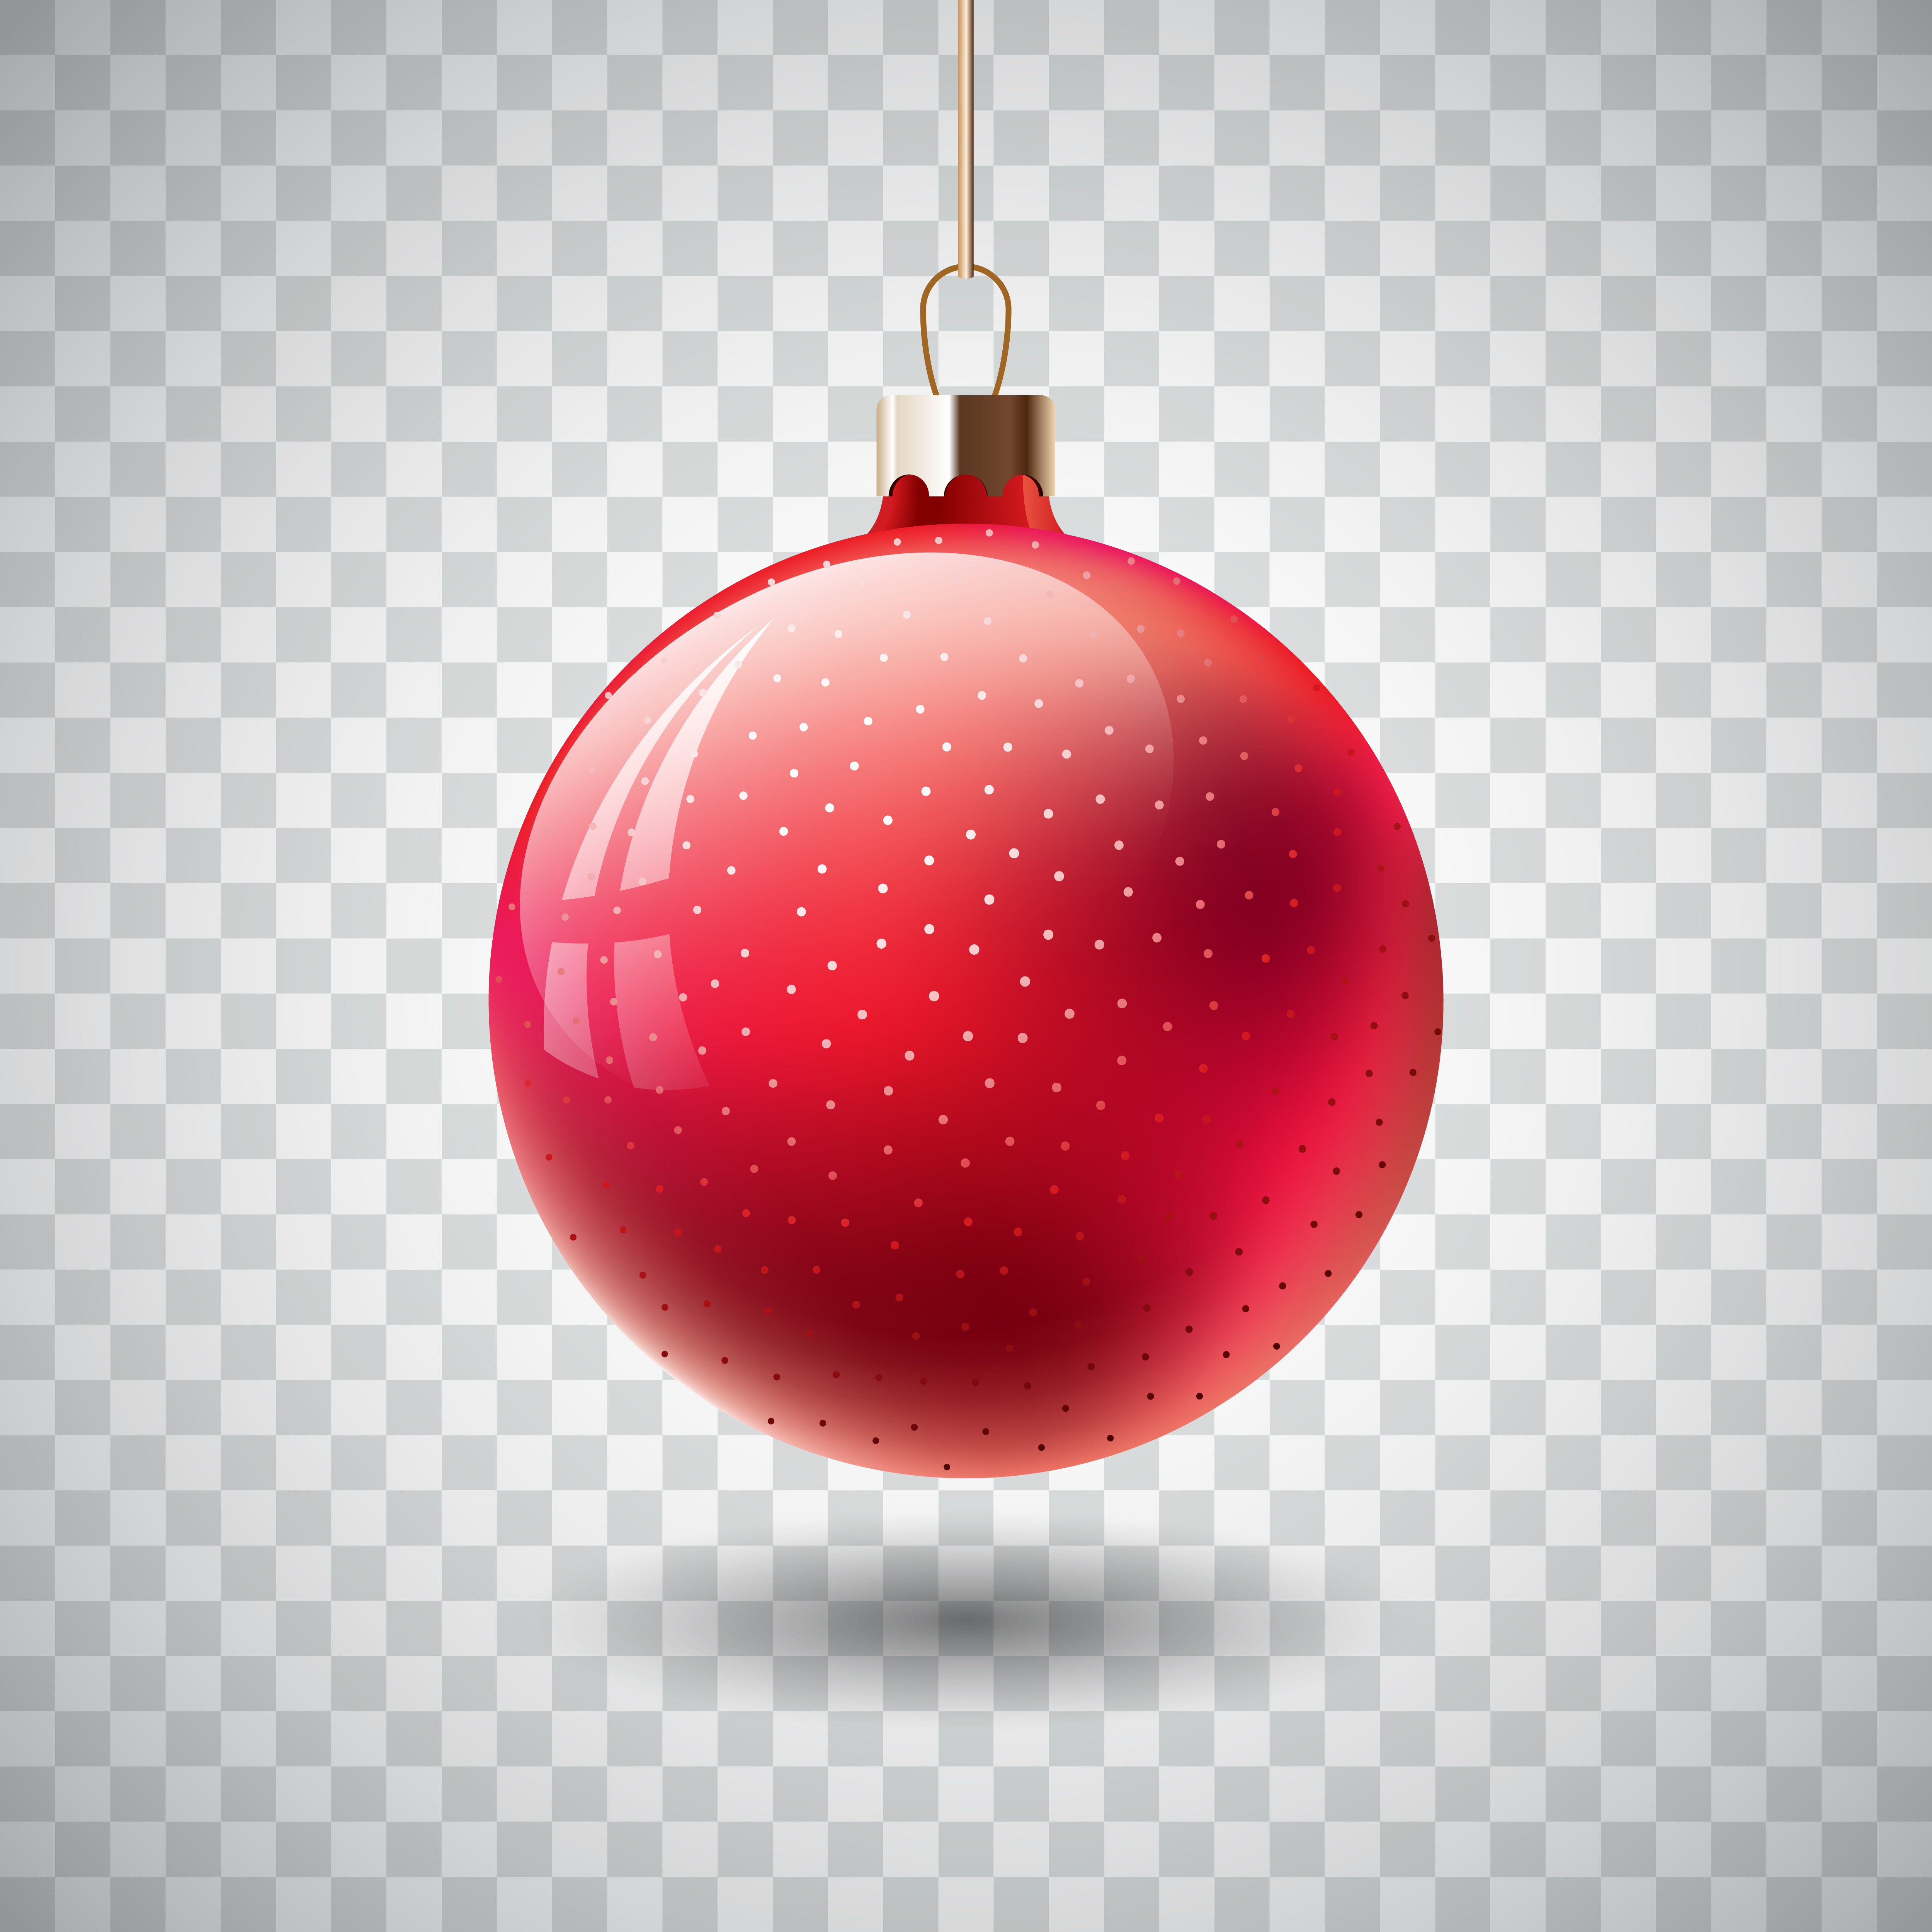 Isolated Red Christmas ornament - Download Free Vectors ...